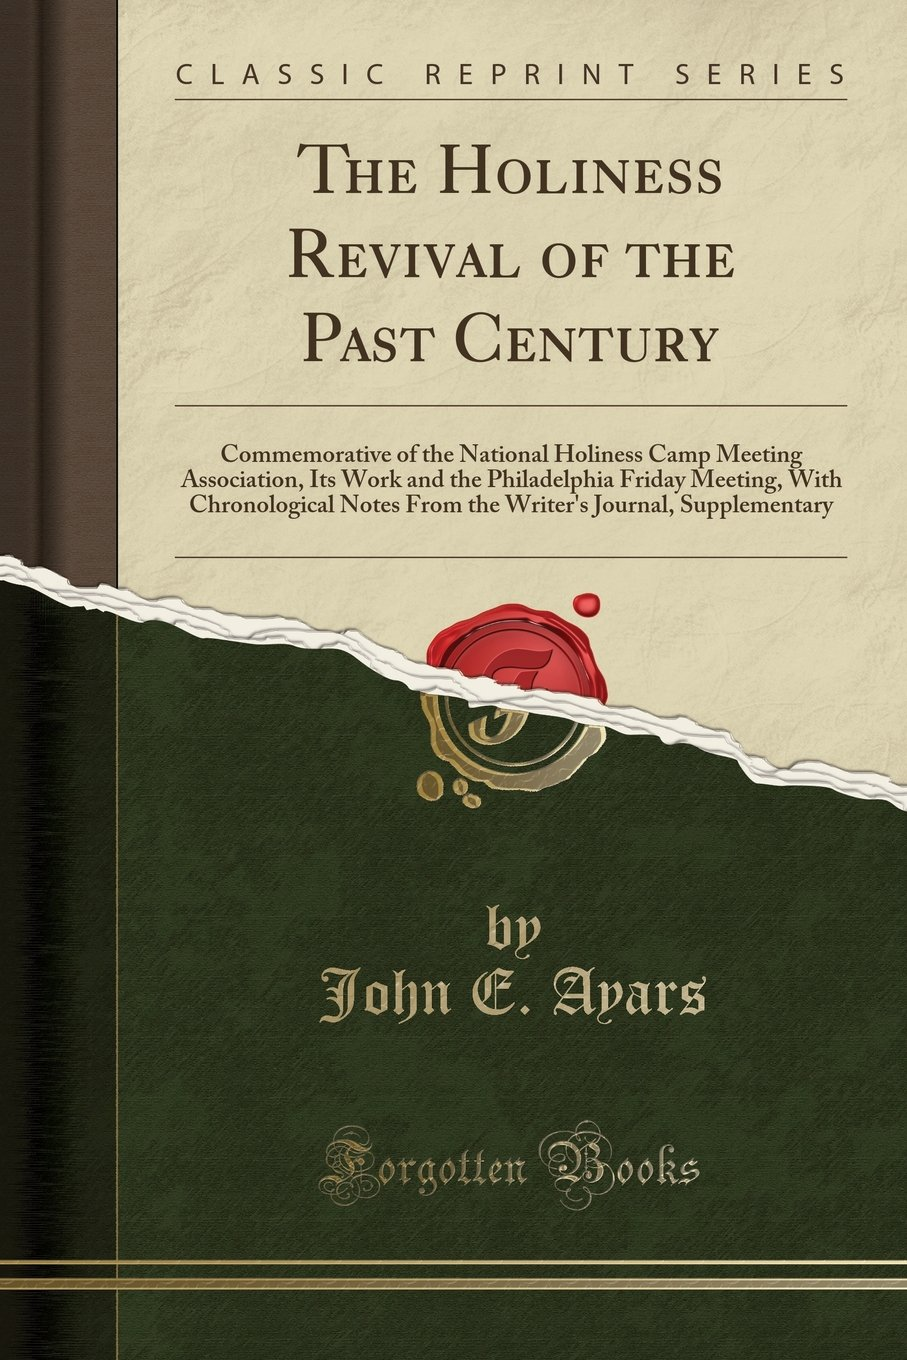 The Holiness Revival of the Past Century: Commemorative of the National Holiness Camp Meeting Association, Its Work and the Philadelphia Friday ... Journal, Supplementary (Classic Reprint) ebook